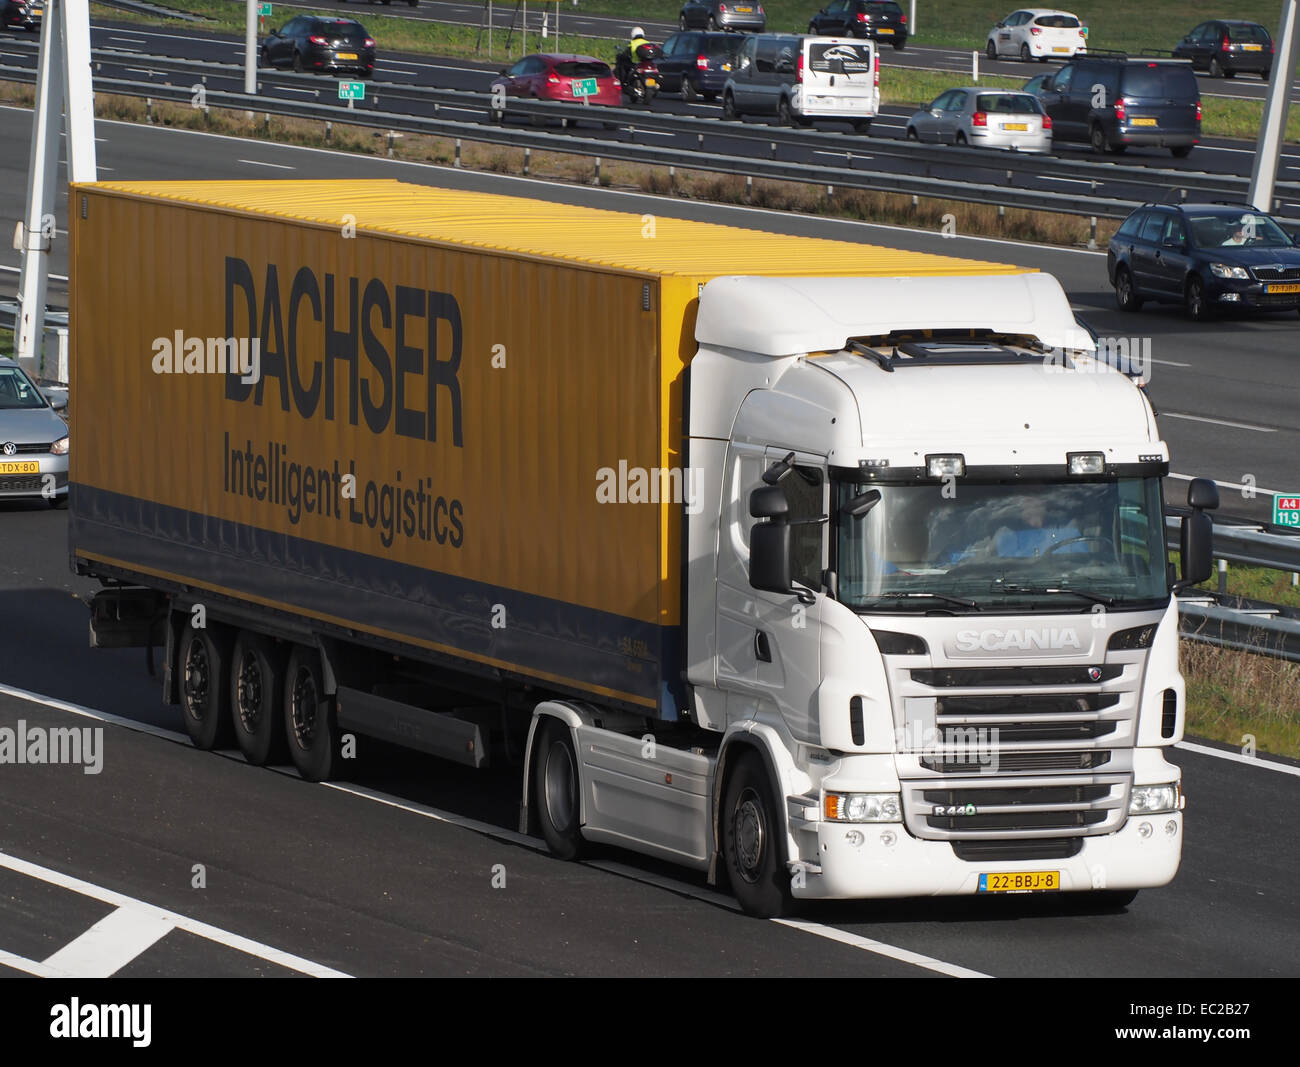 SCANIA R440, Dachser Intelligent Logistics Photo Stock